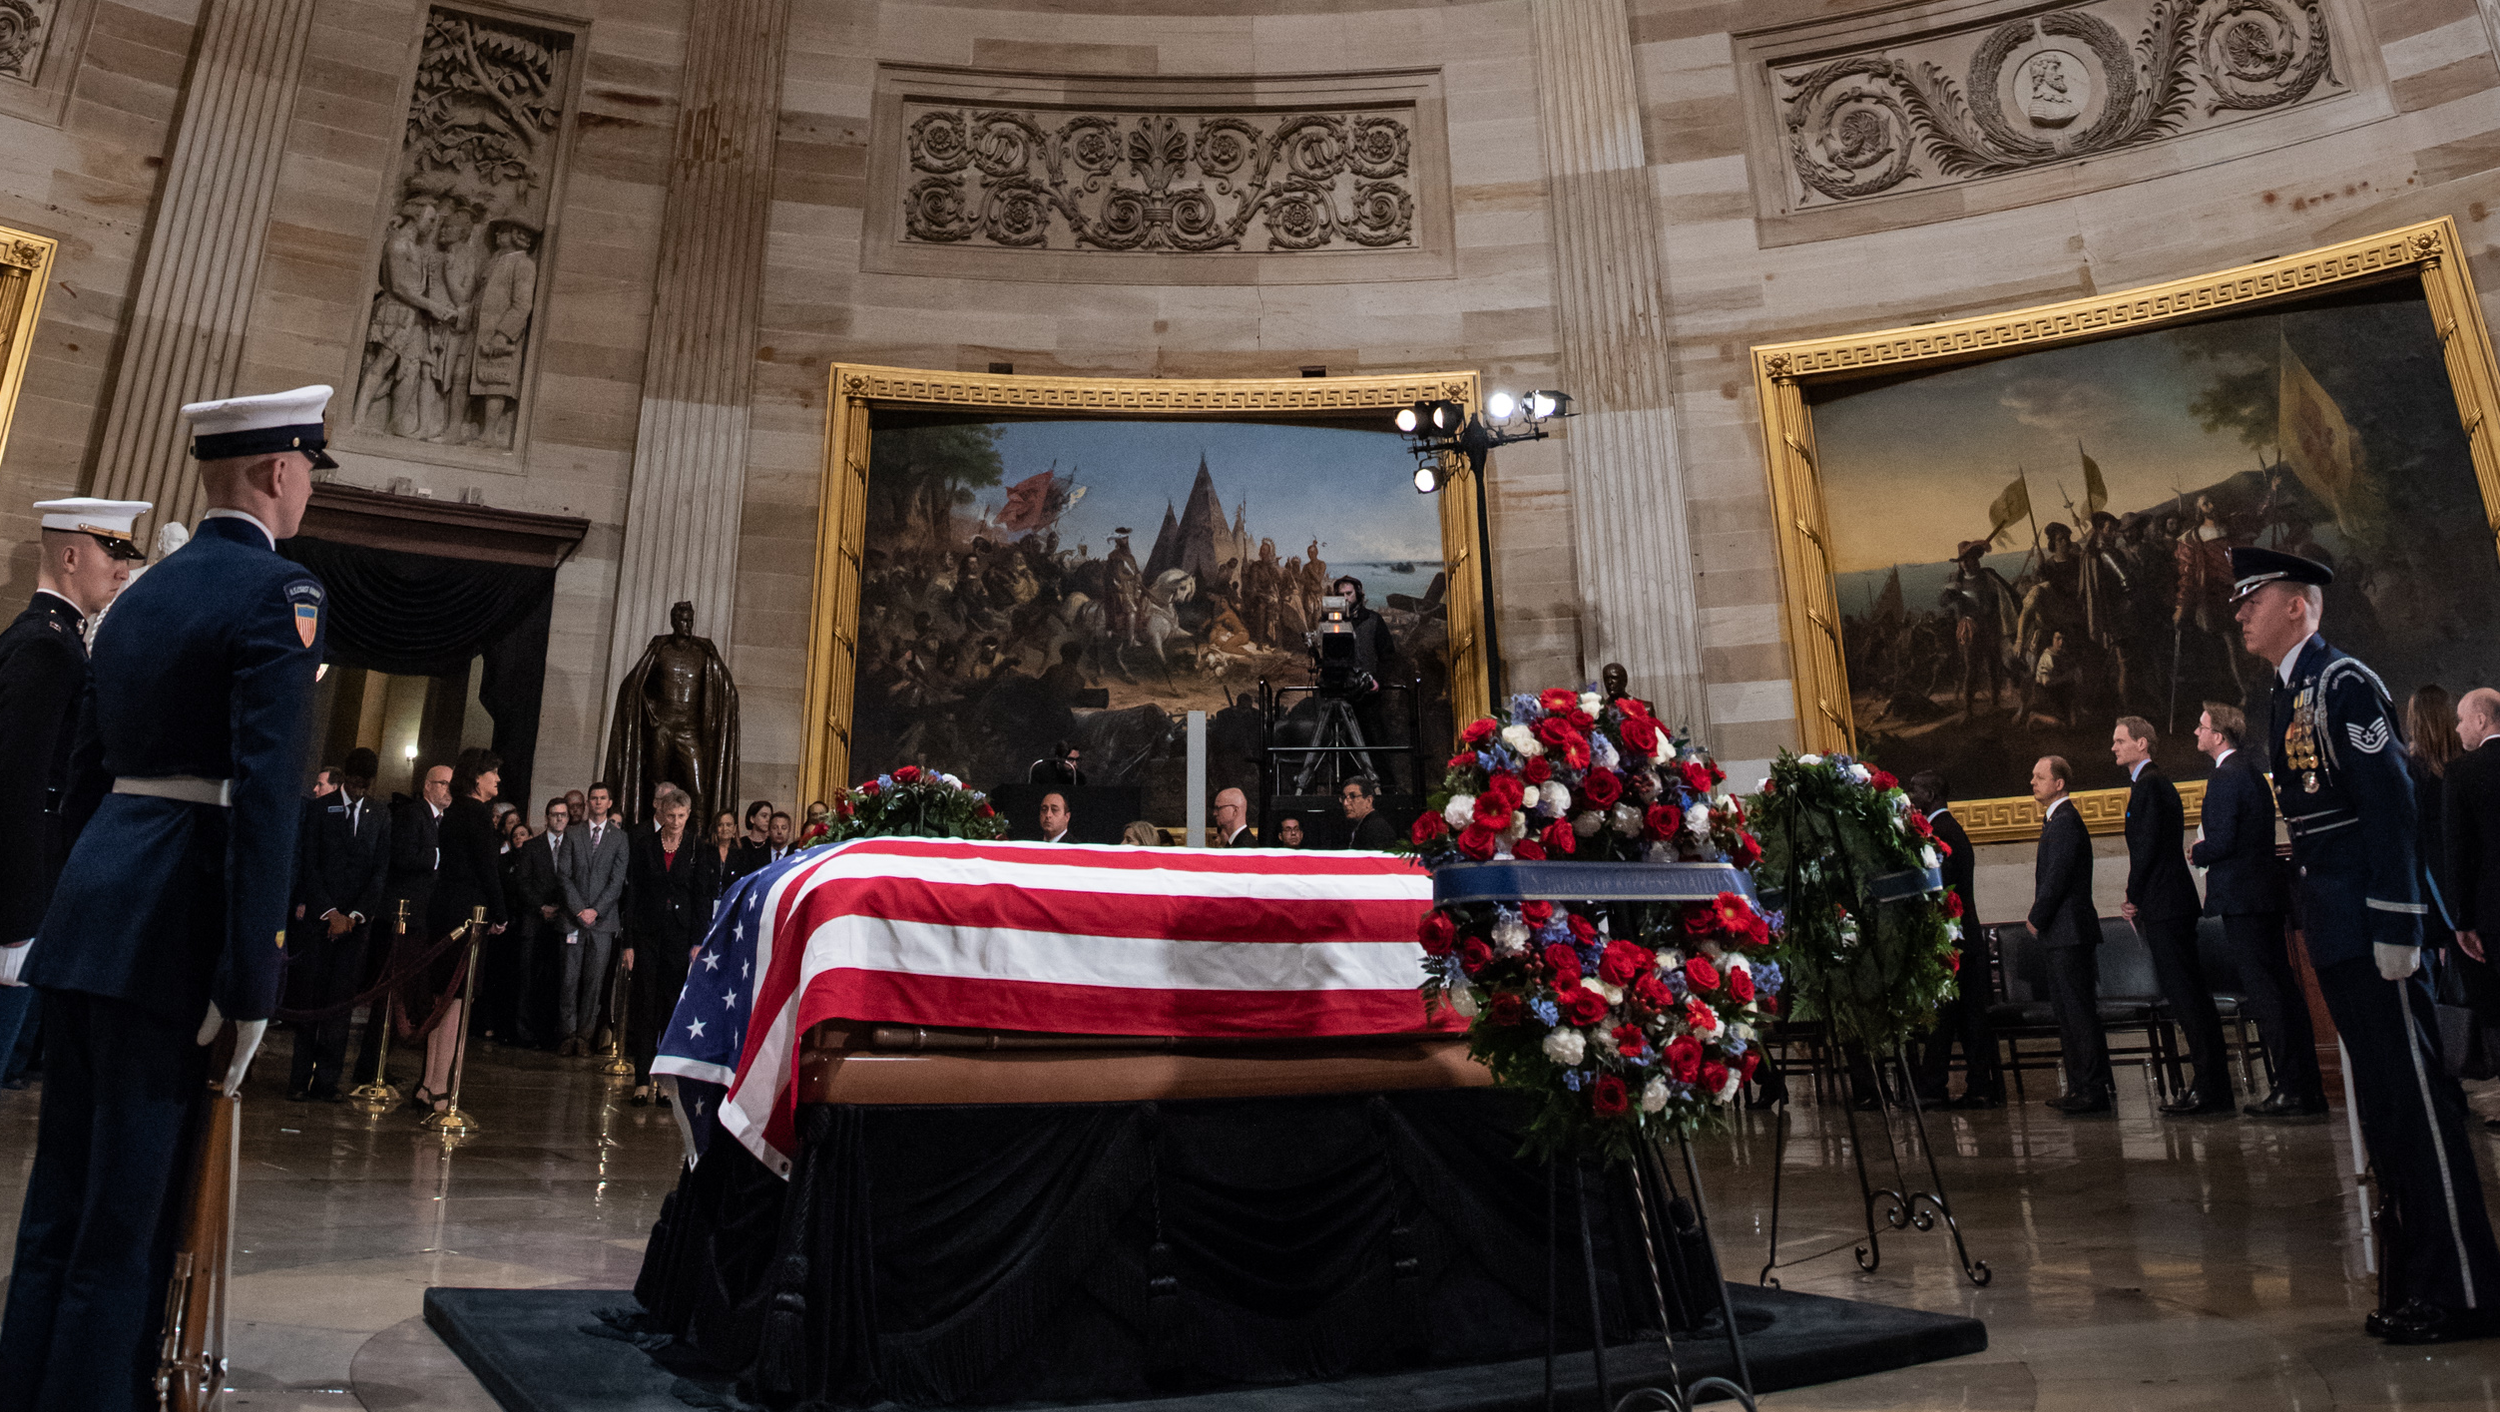 President George H.W. Bush lies in state at the Capitol. Photograph by Dana Barciniak.